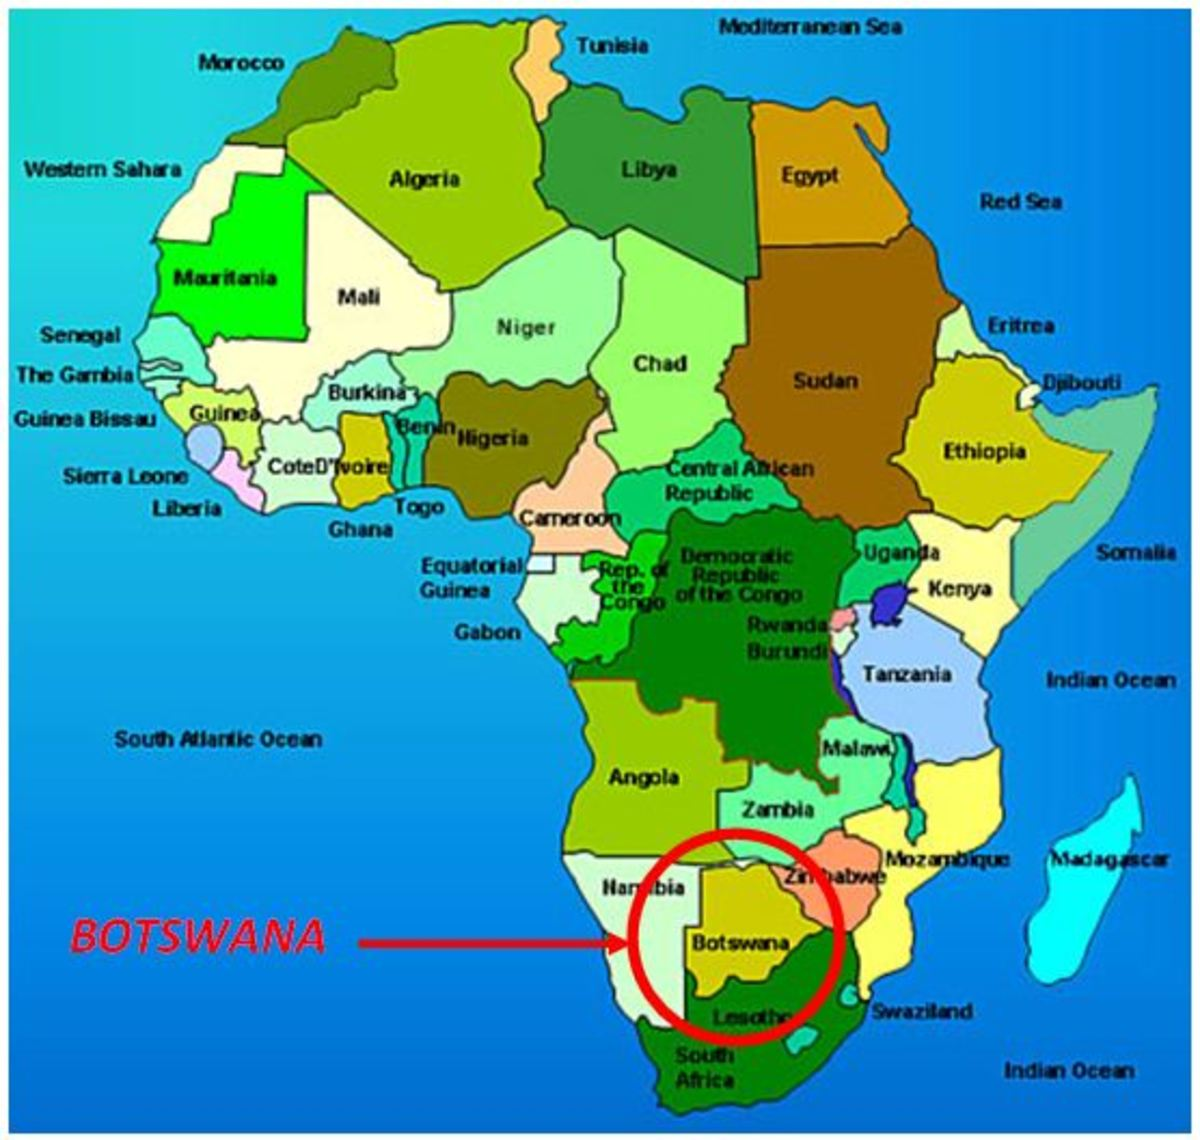 Botswana circled in red